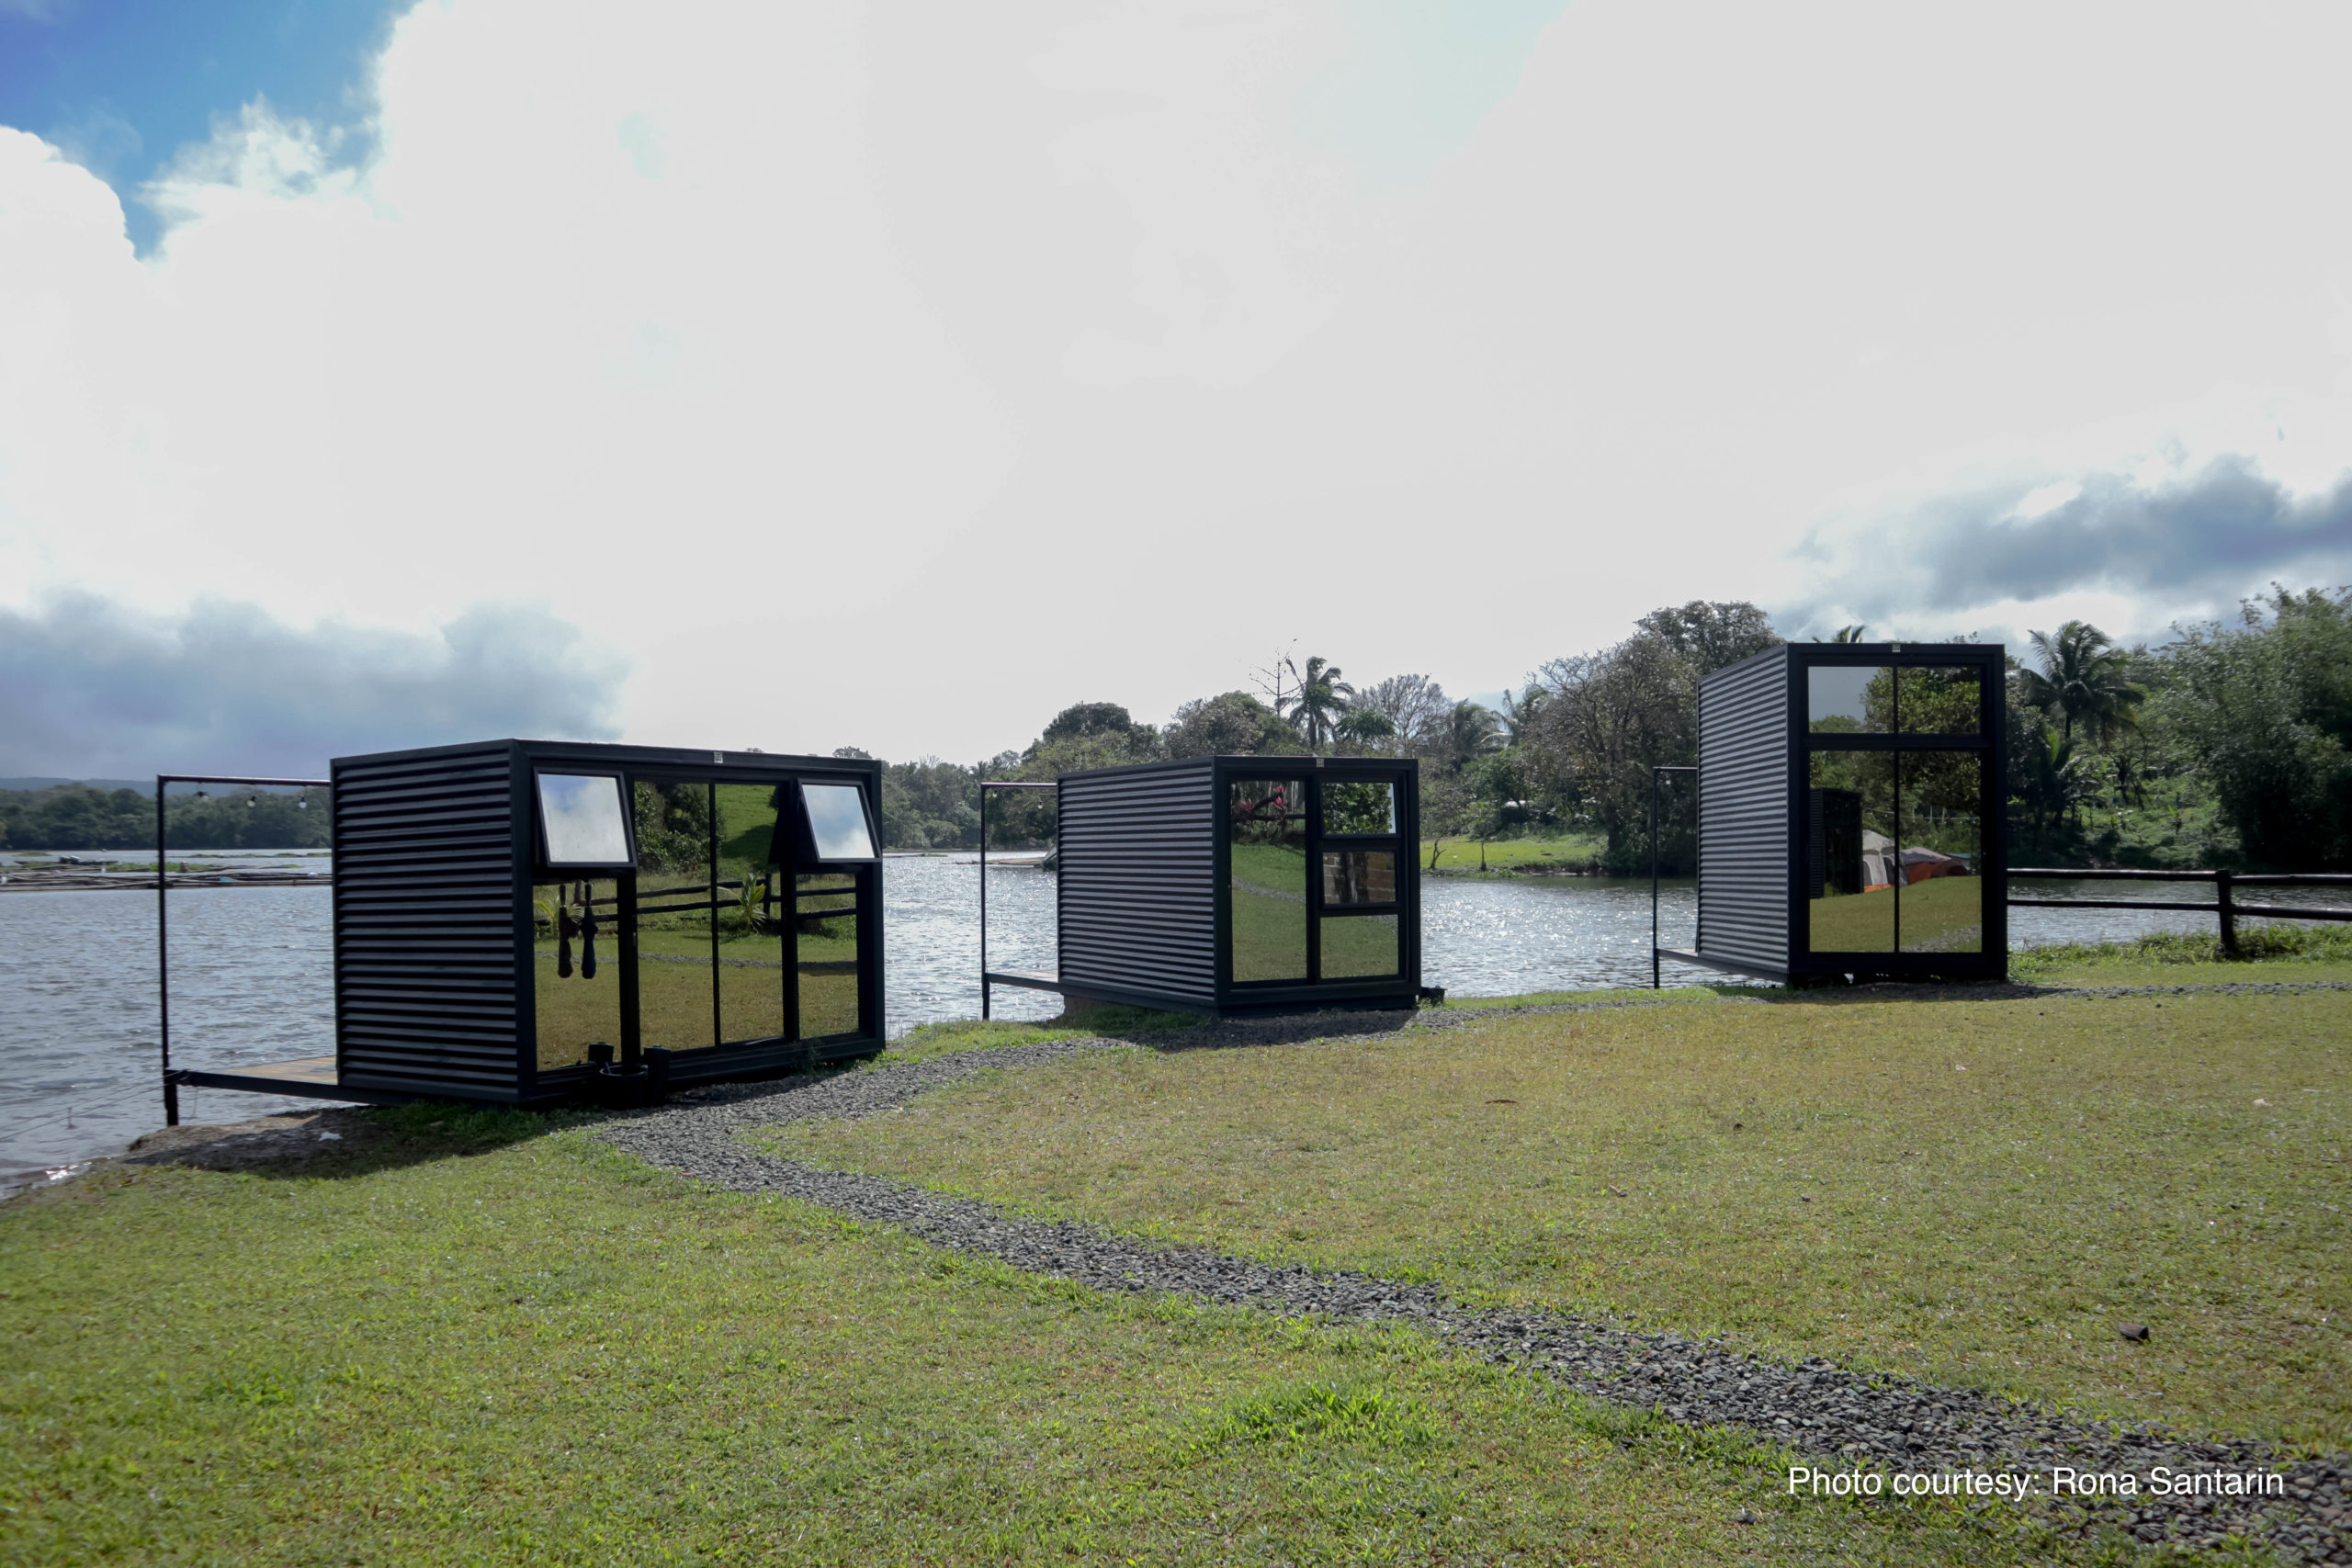 Glamping experience at Bloc Camp in Laguna, Philippines